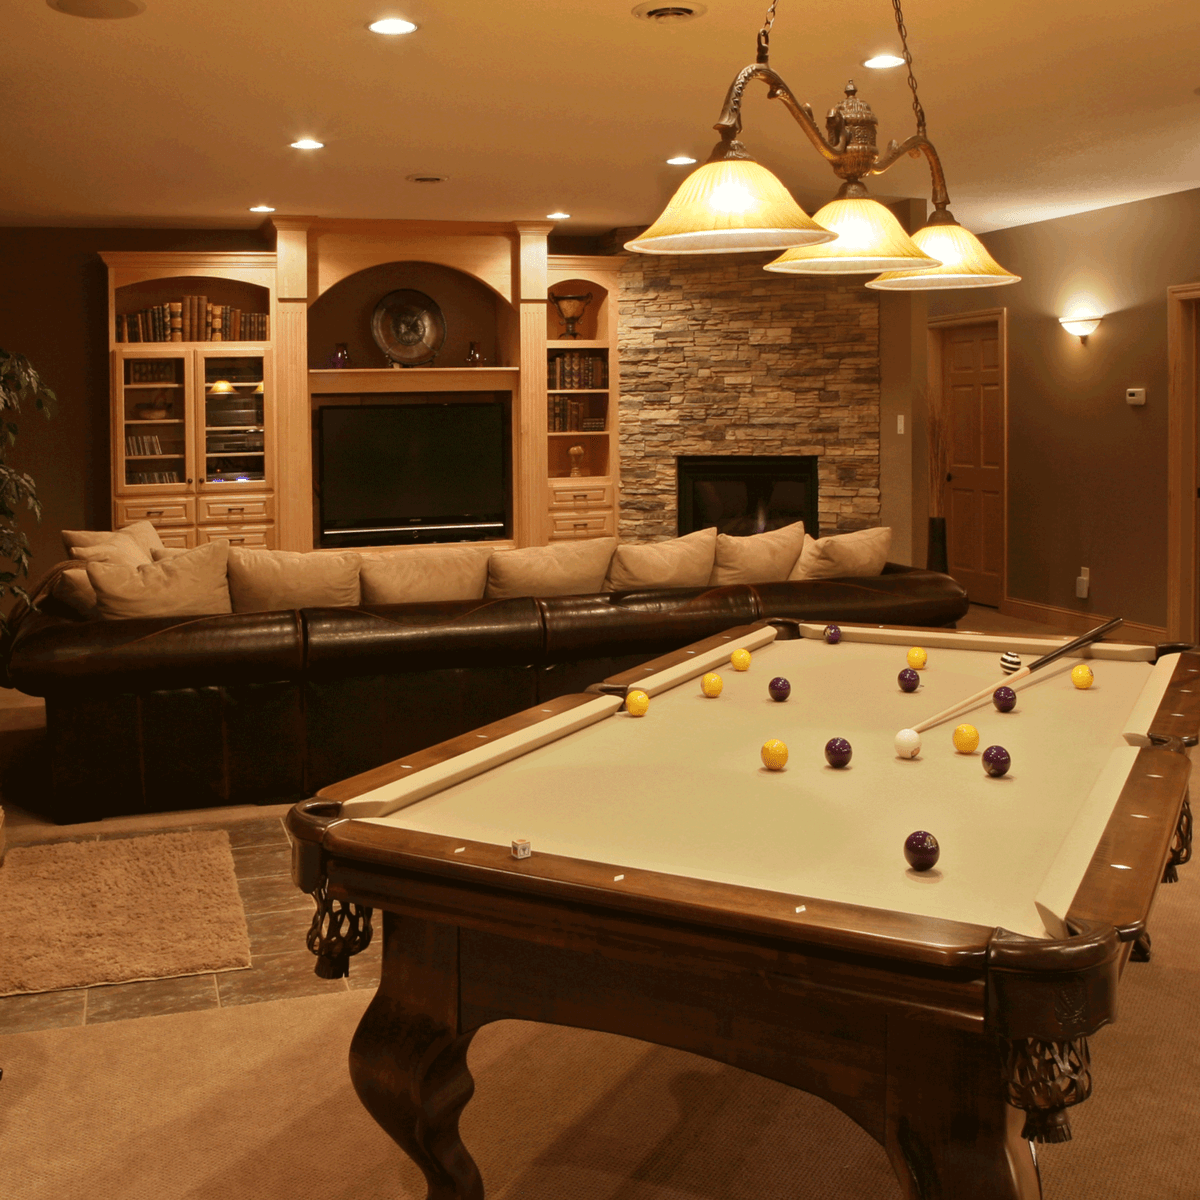 A pool table and entertainment area inside a basement